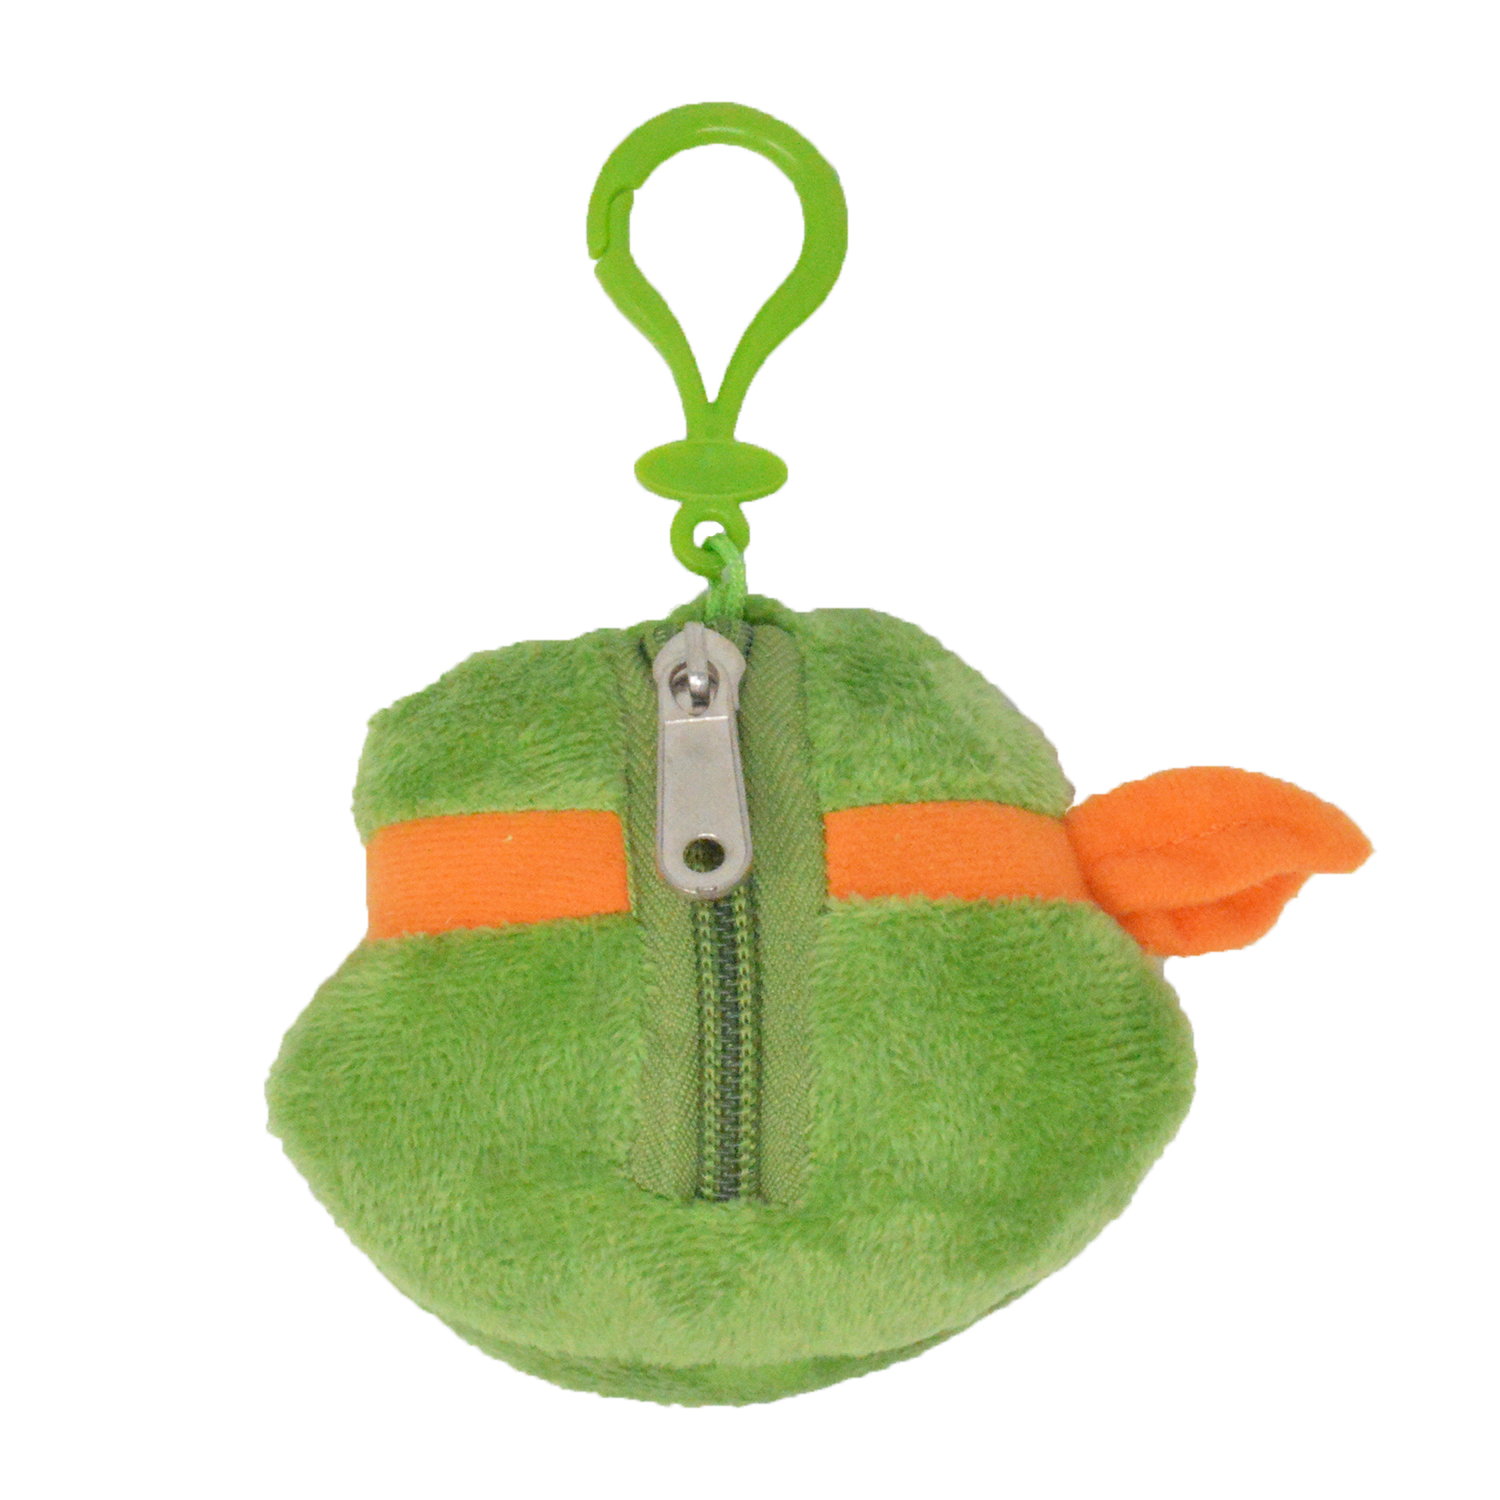 Cartoon-Plush-Coin-Clip-Toy-Bag-with-Zipper-for-Backpacks-Multiple-Styles thumbnail 38